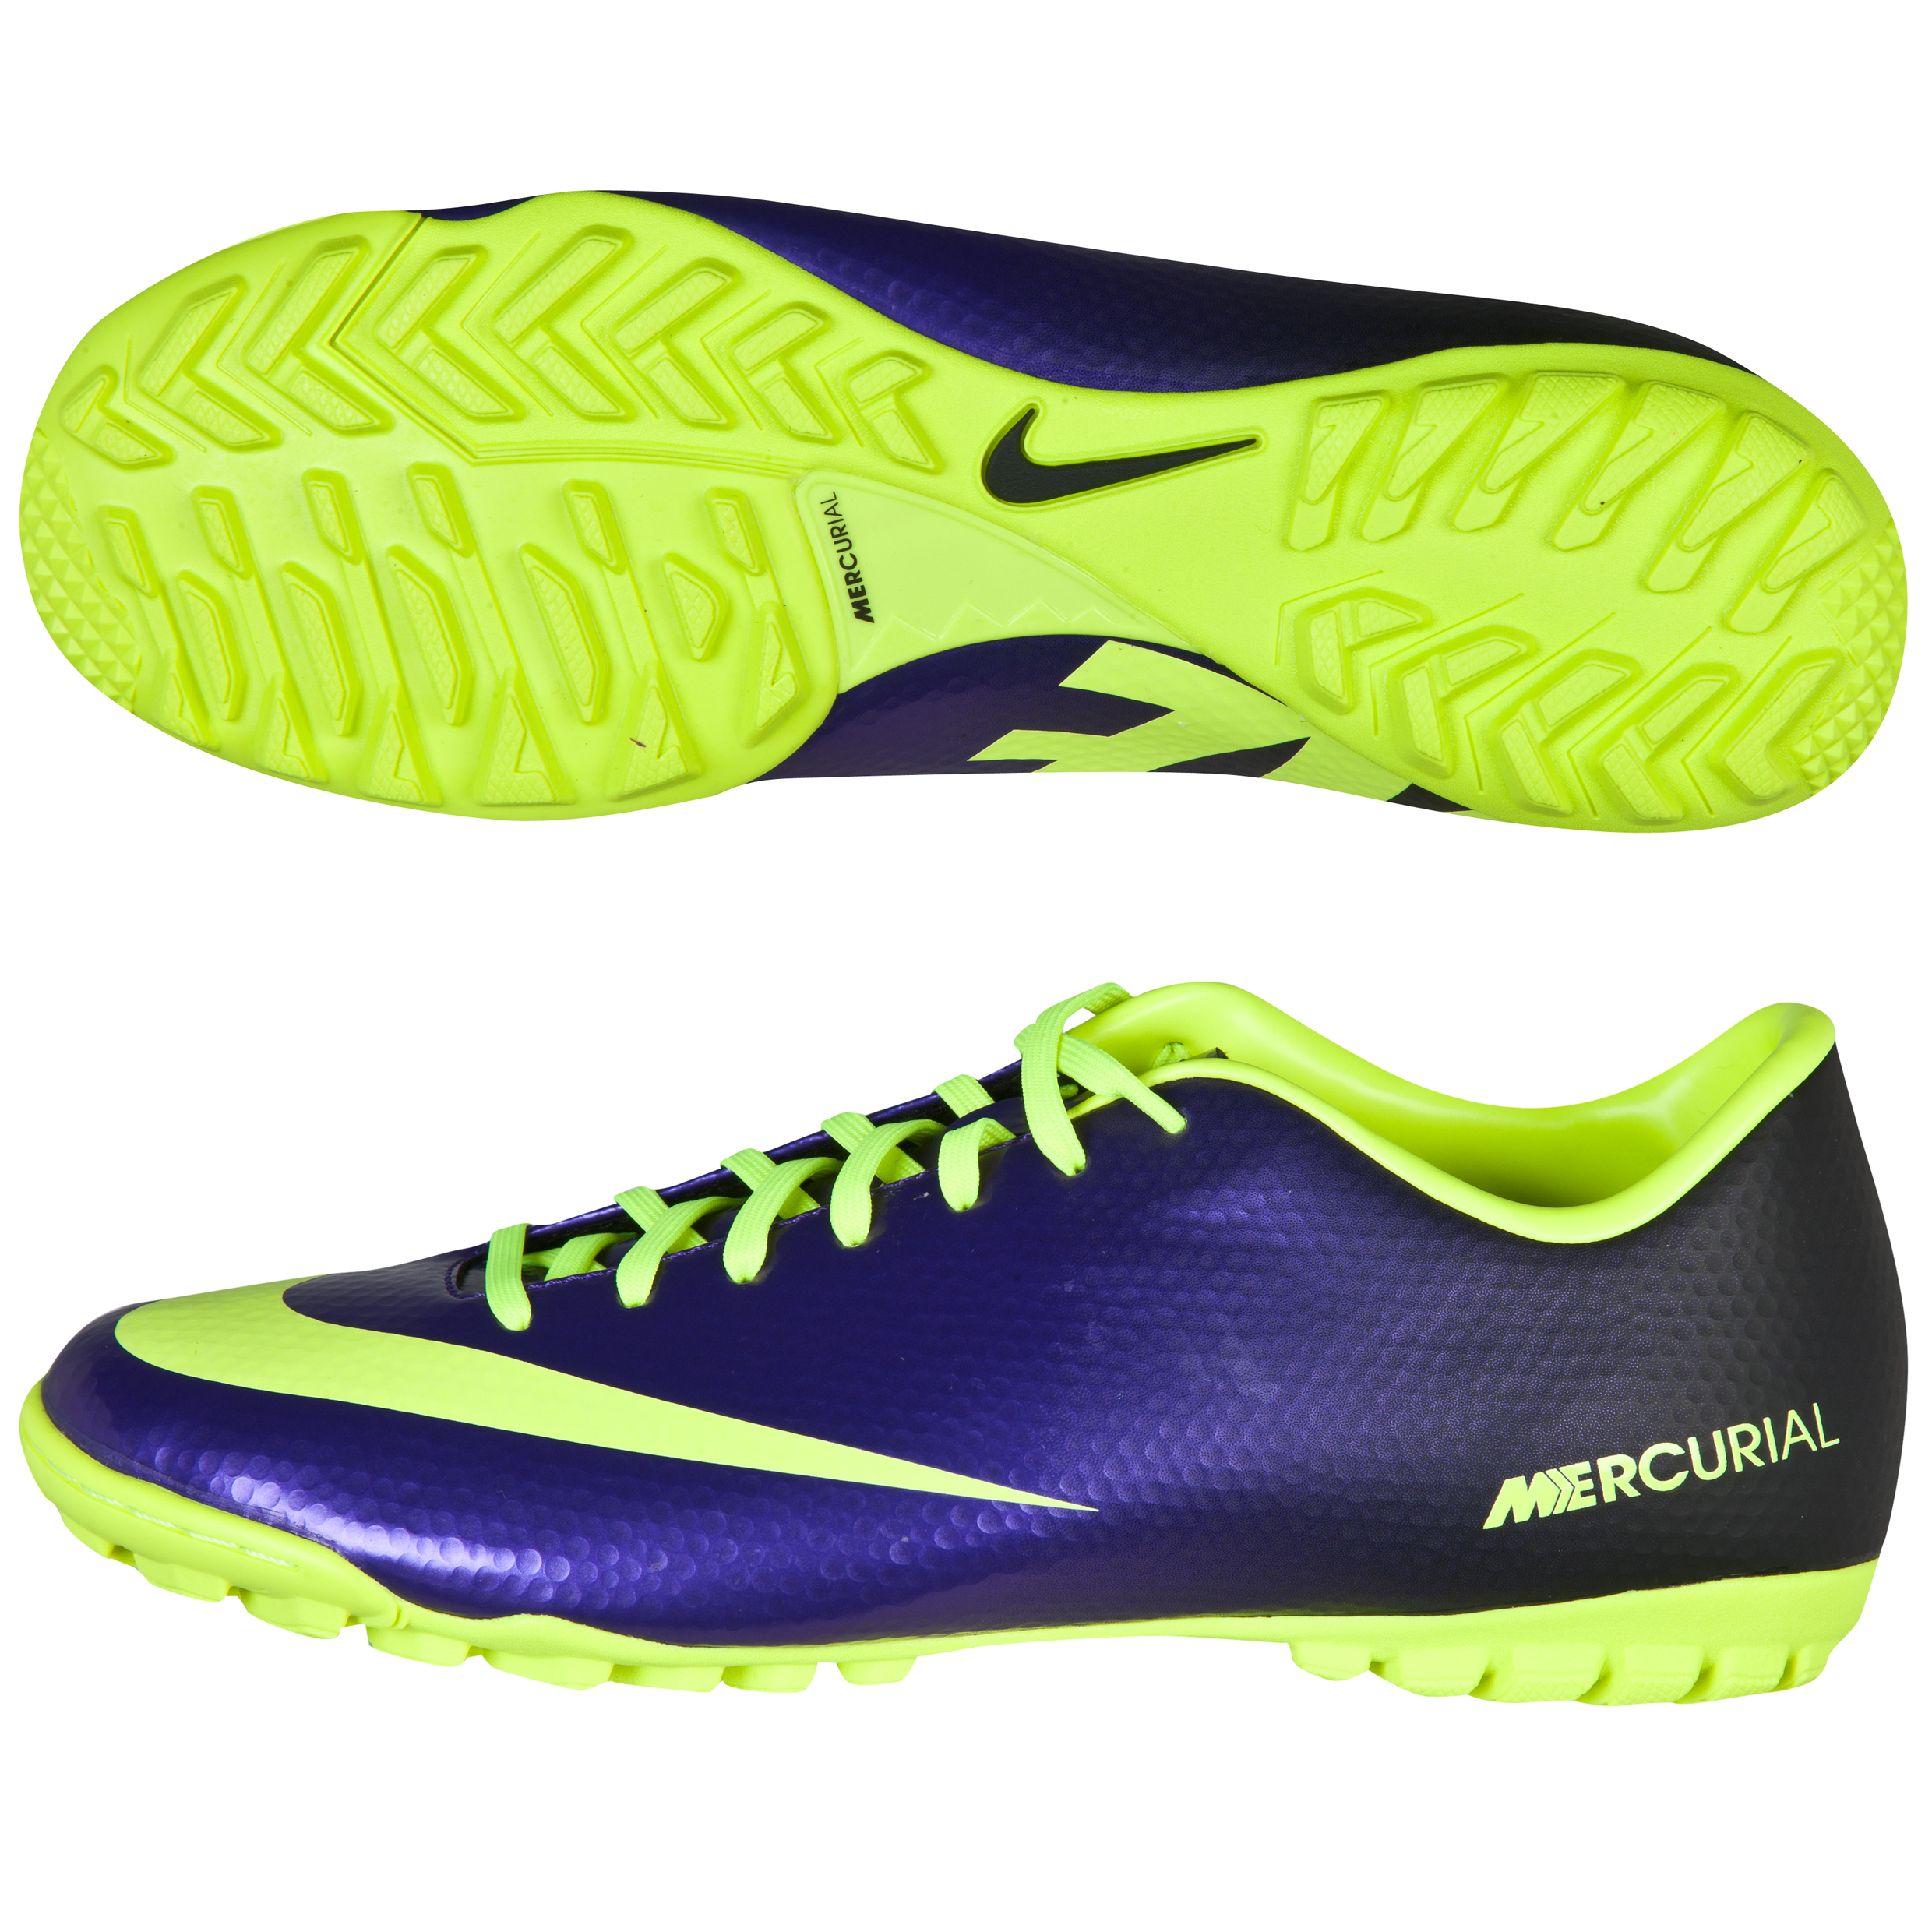 Nike Mercurial Victory Iv Astroturf Trainers - Electro Purple/Volt/Black Purple